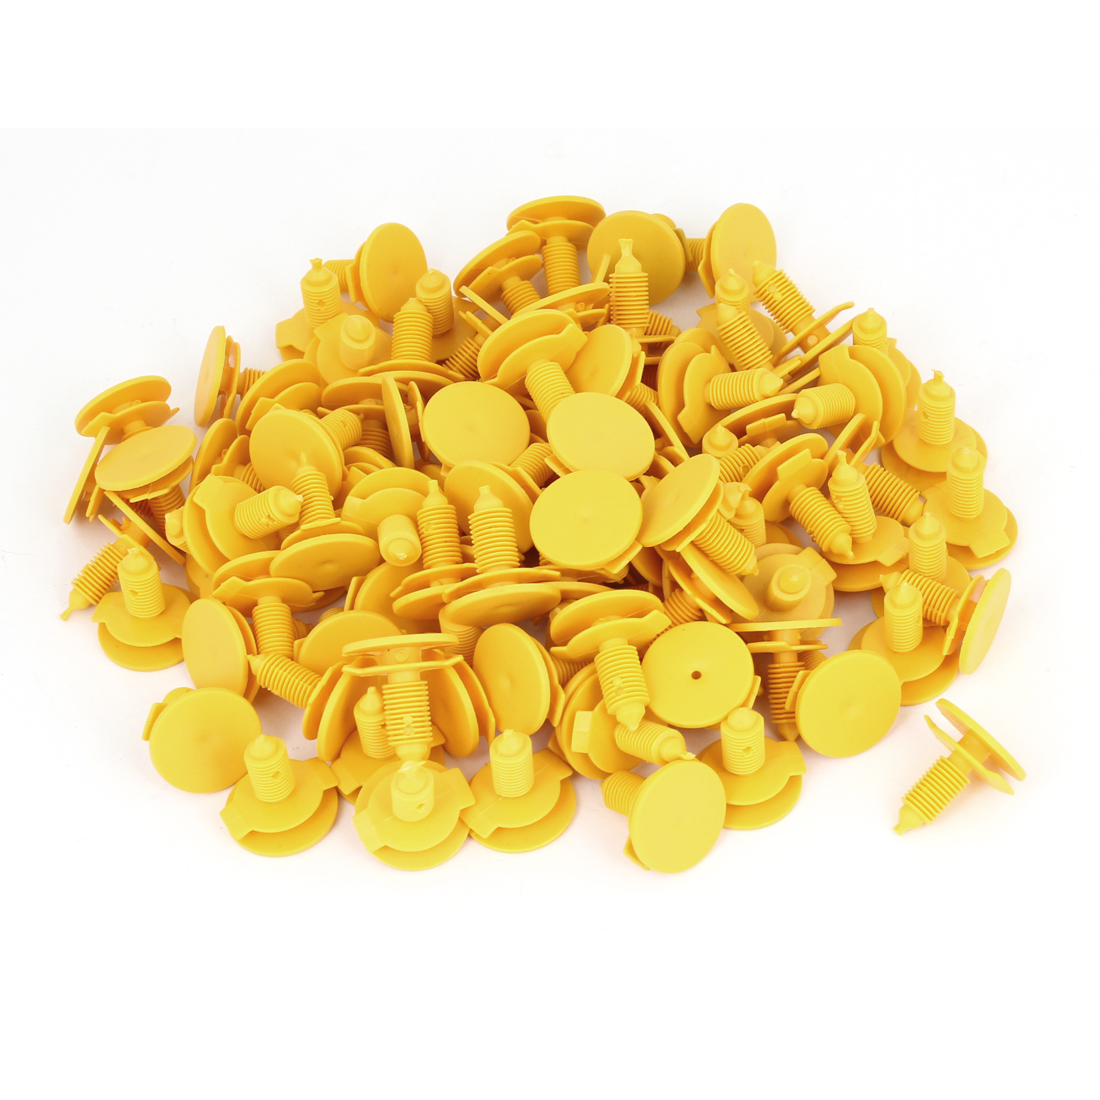 "100 x Van Truck Car 6.7mm 0.26"" Door Panel Yellow Plastic Rivets Retainer Clip"